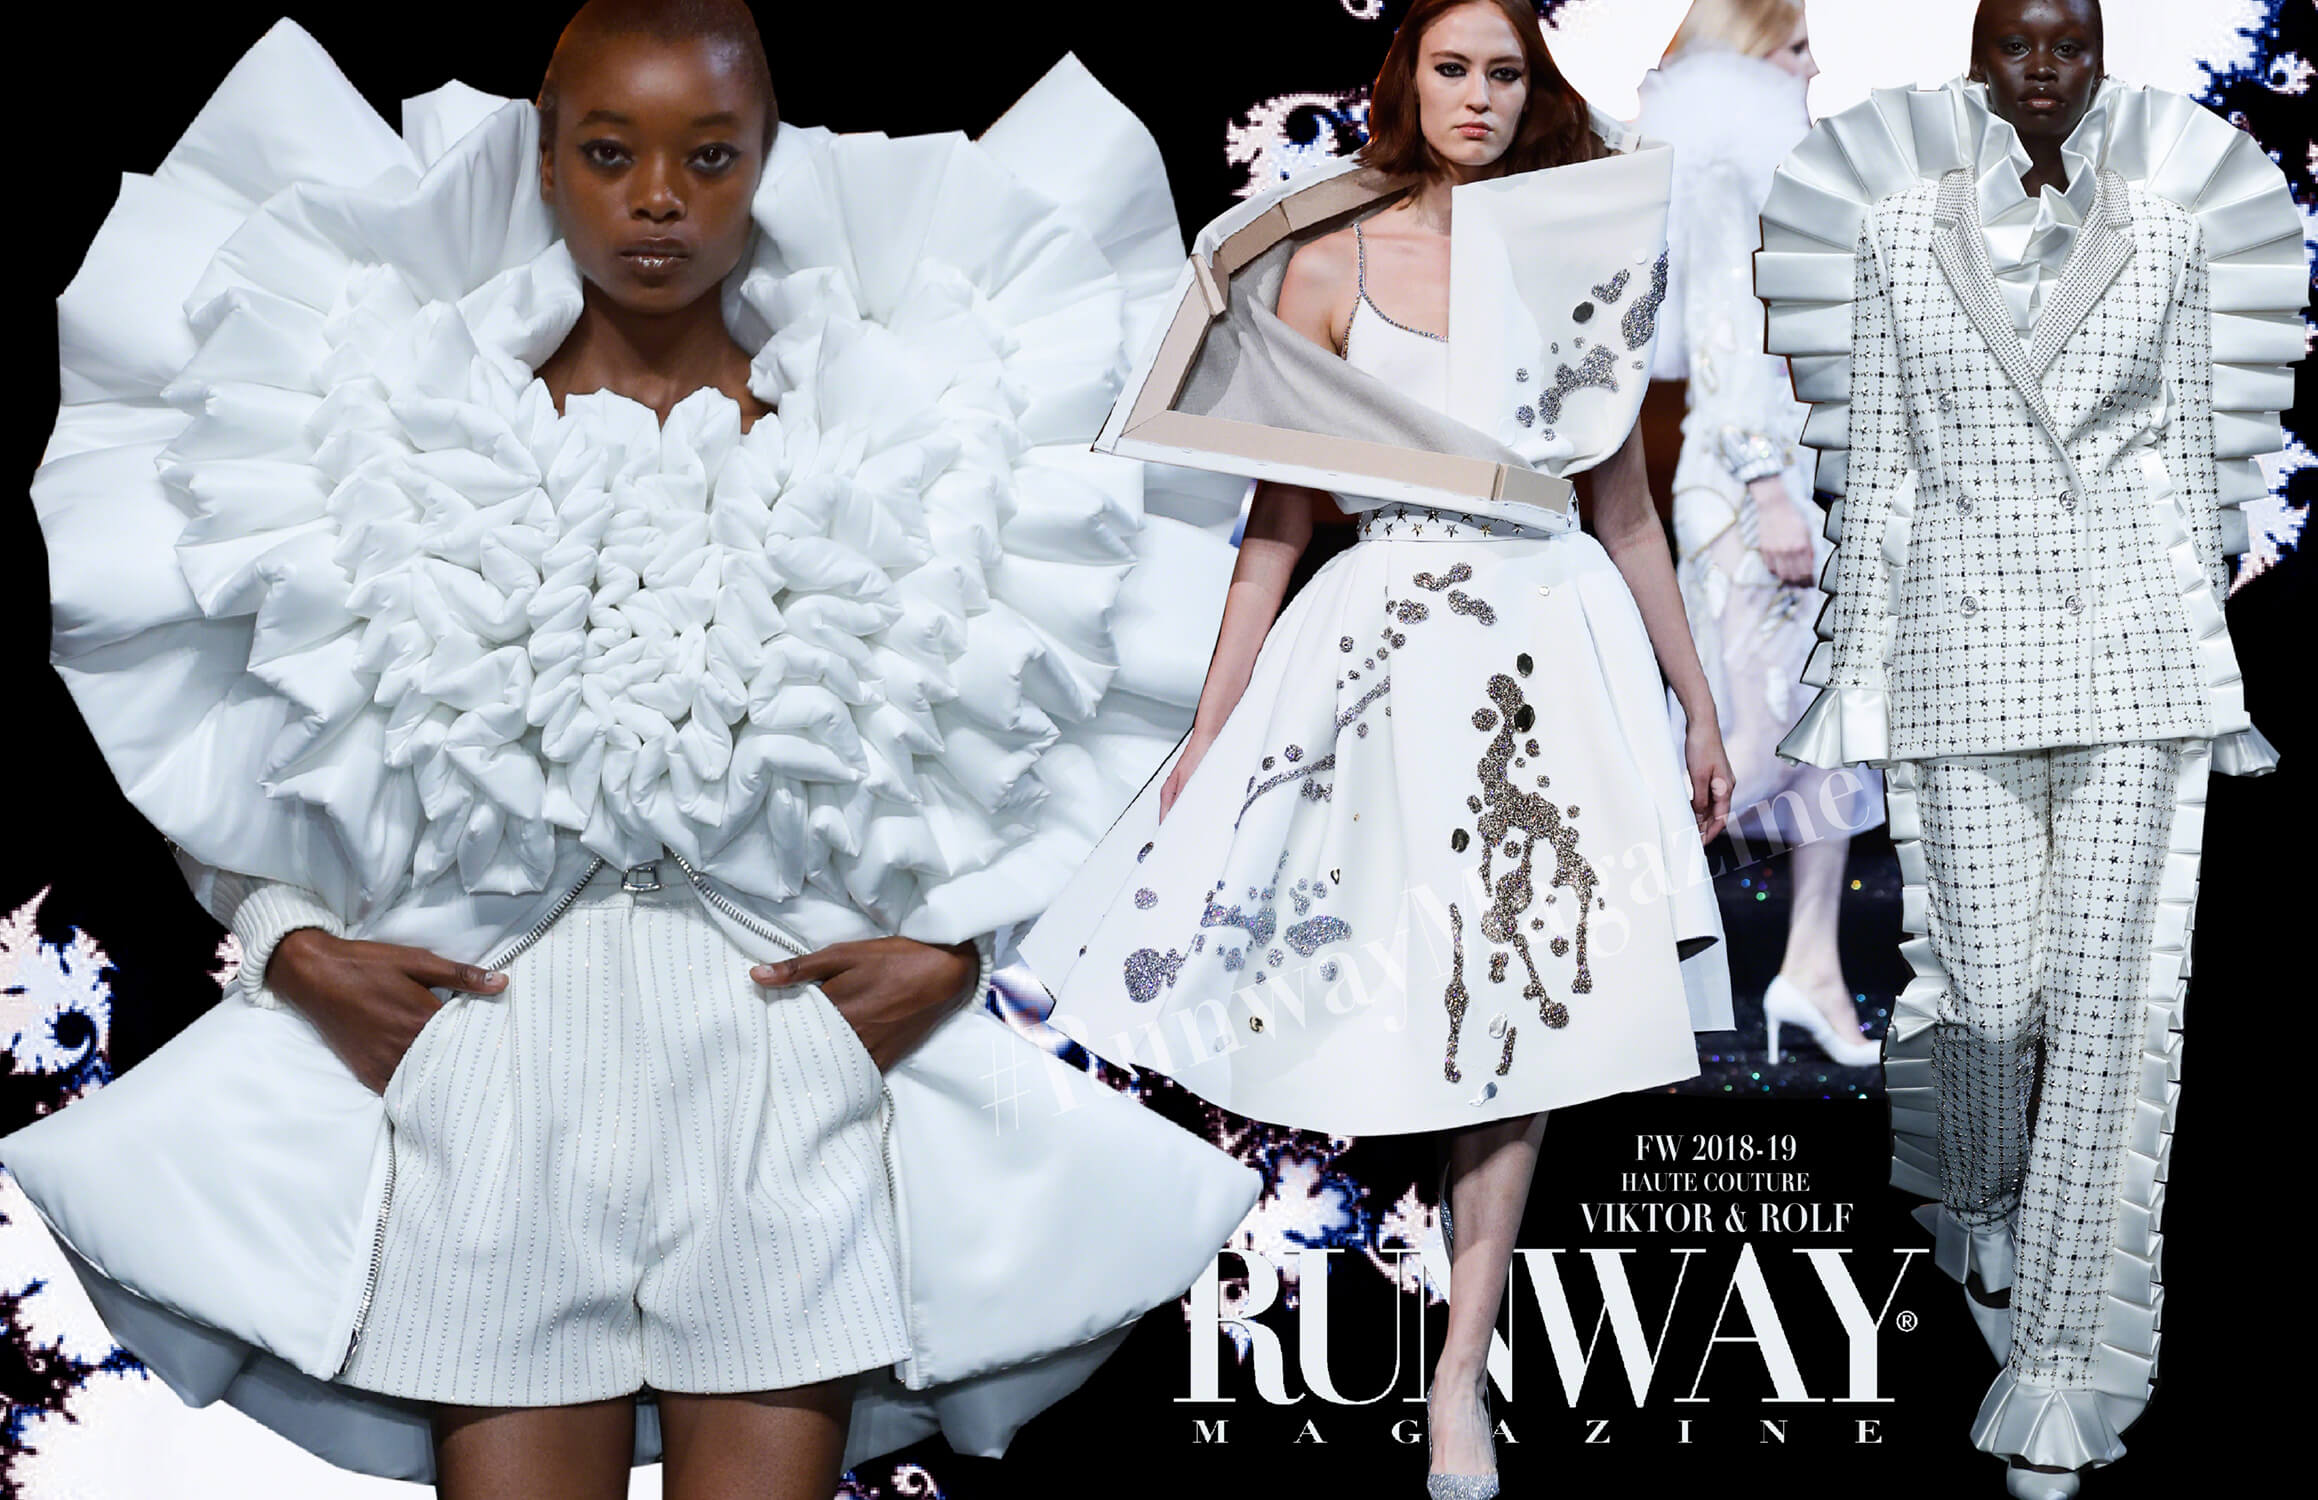 VIKTOR & ROLF Haute Couture Fall Winter 2018-2019 Runway Magazine